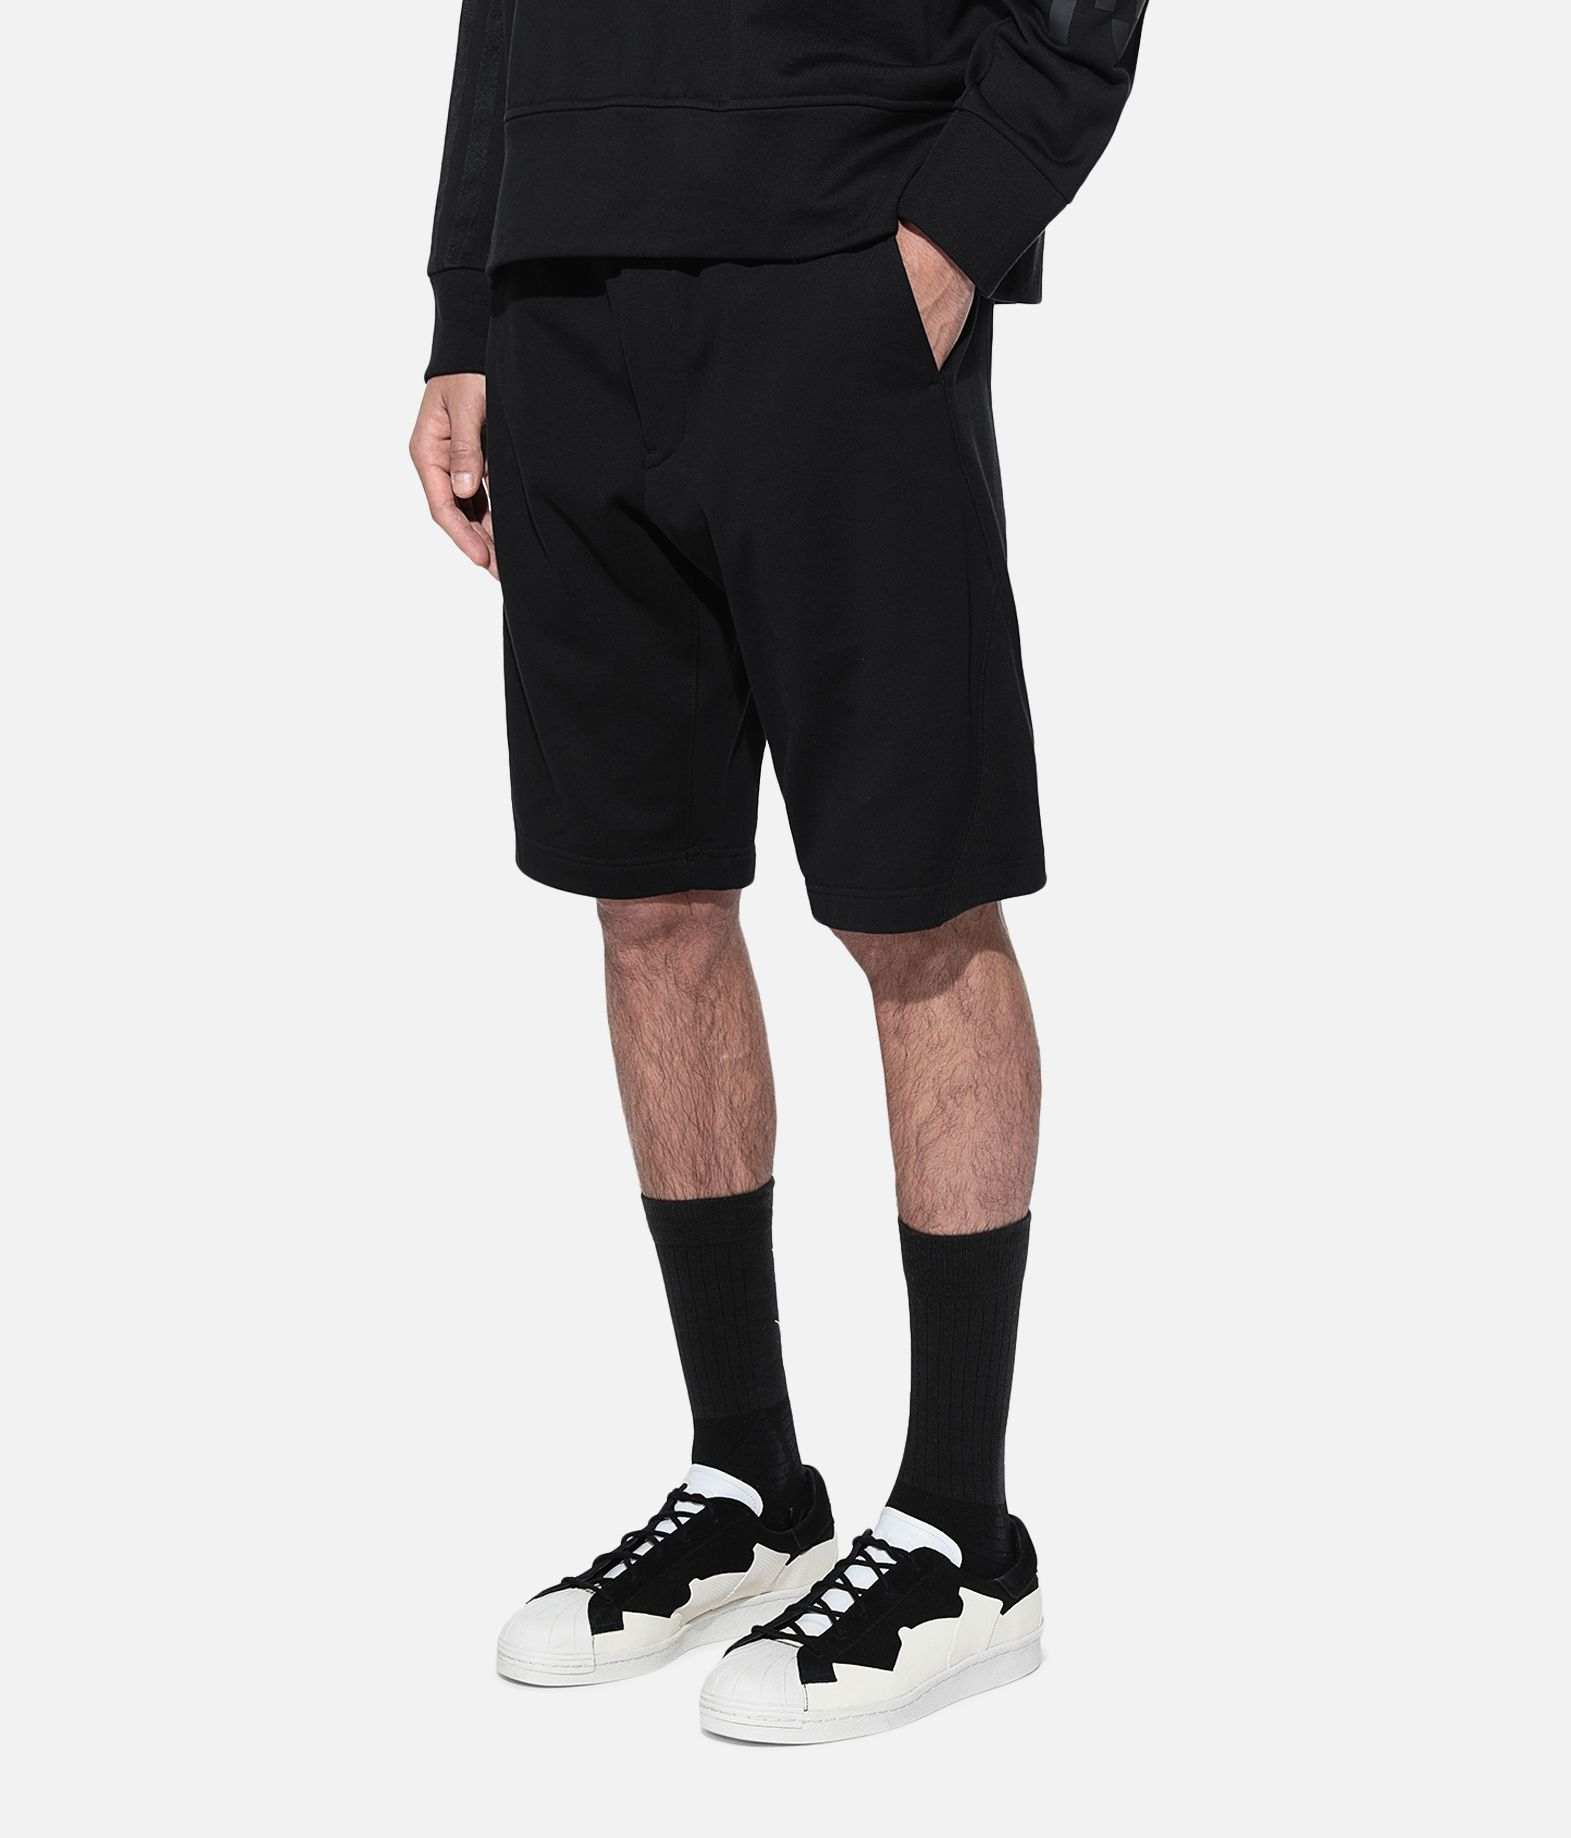 Y-3 Y-3 New Classic Shorts Sweat shorts Man e